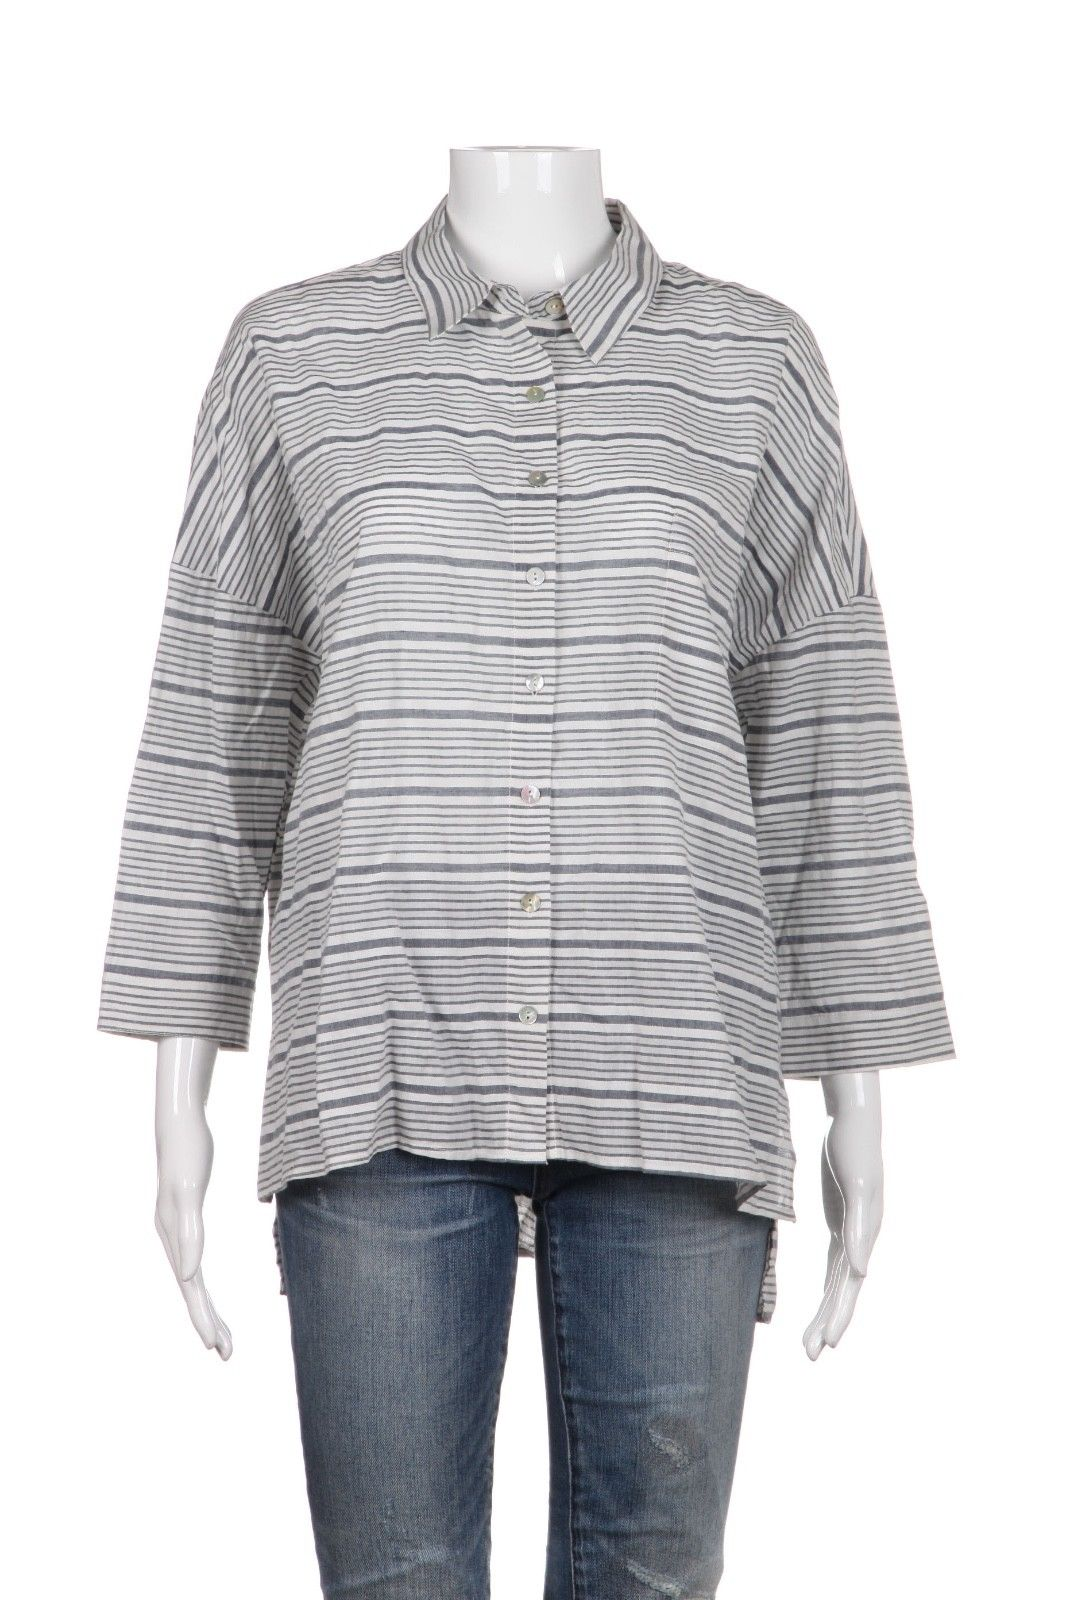 JOA Los Angeles Blue White Striped Button Down Shirt Top Size L (New)